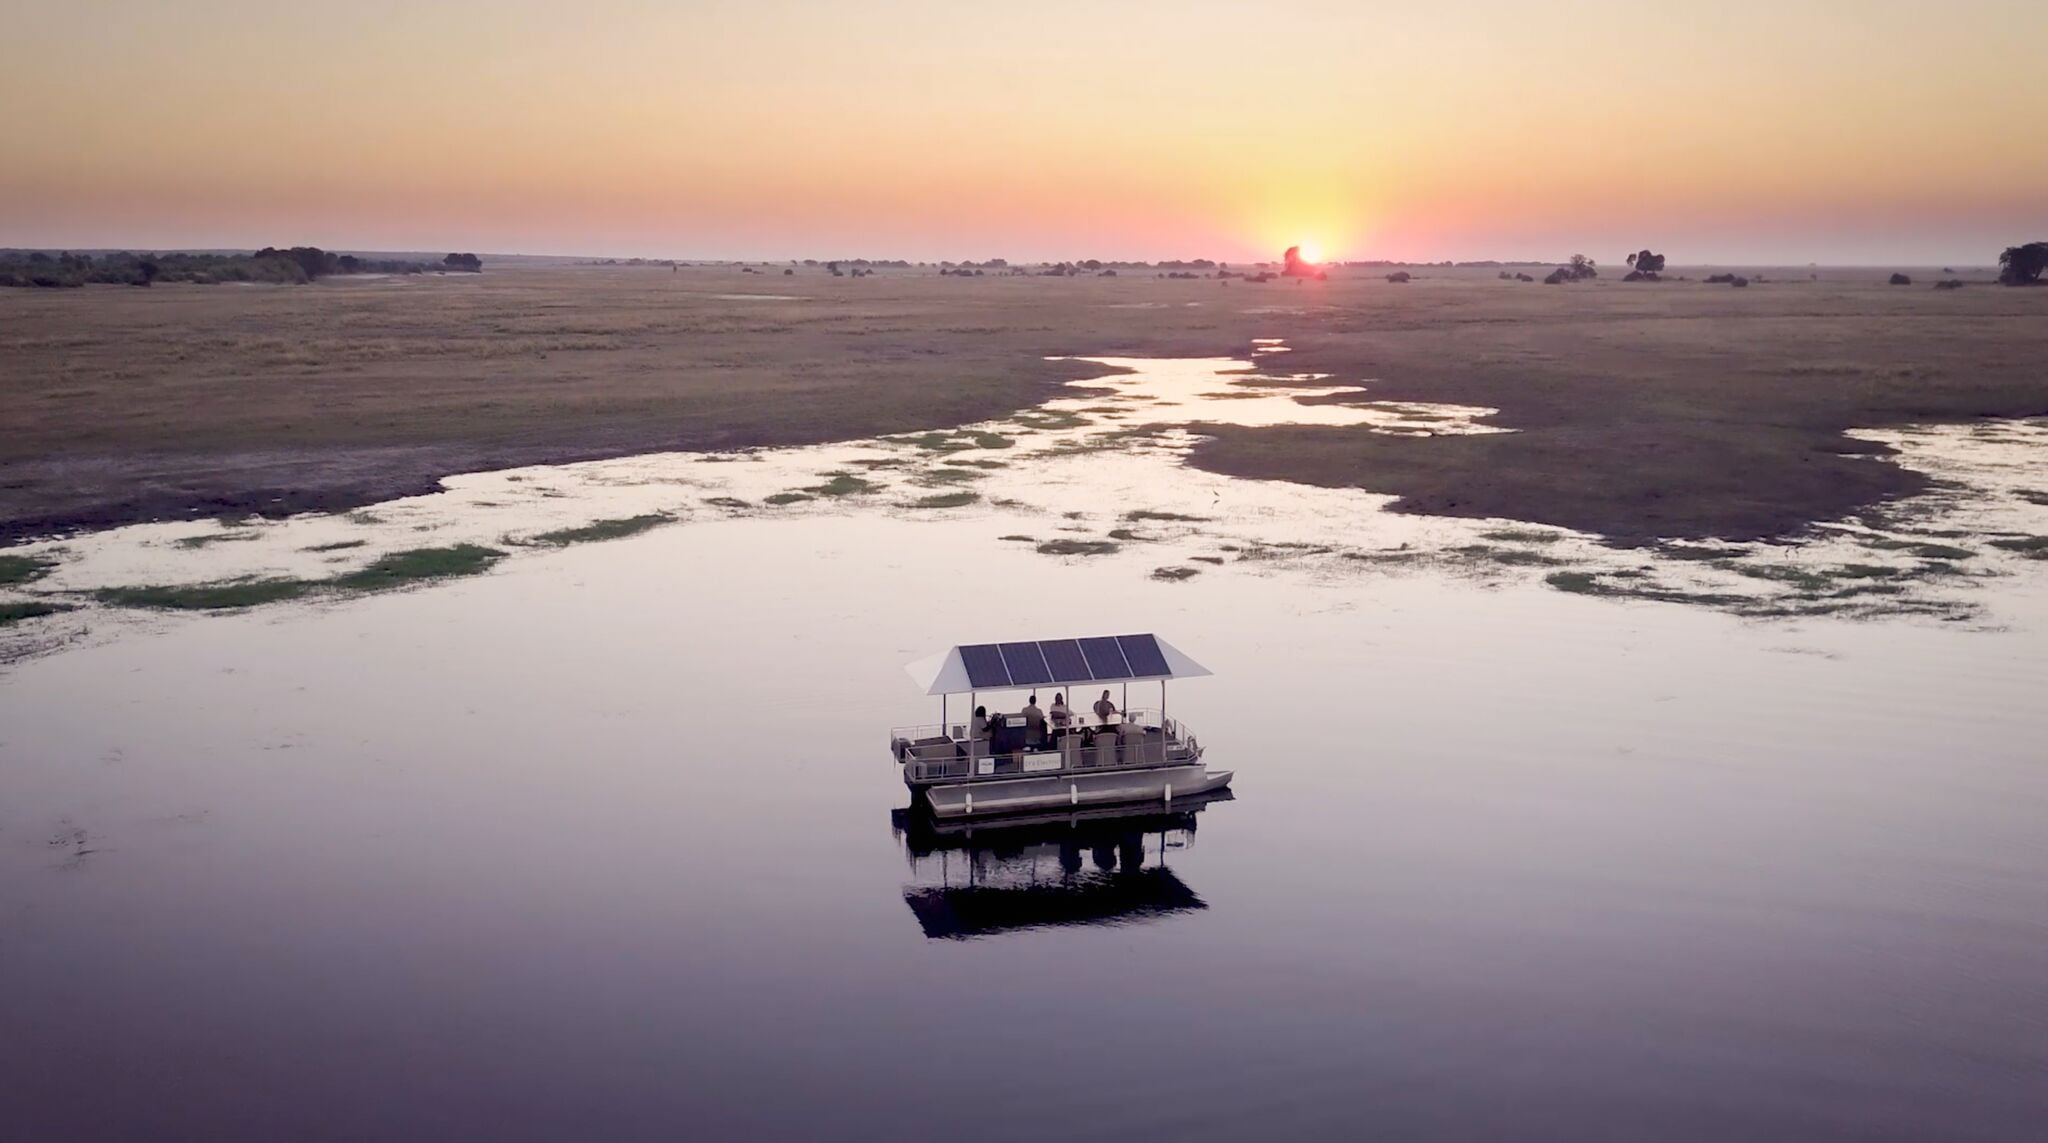 Chobe Game Lodge gives just the right touch of luxury in the heart of Africa